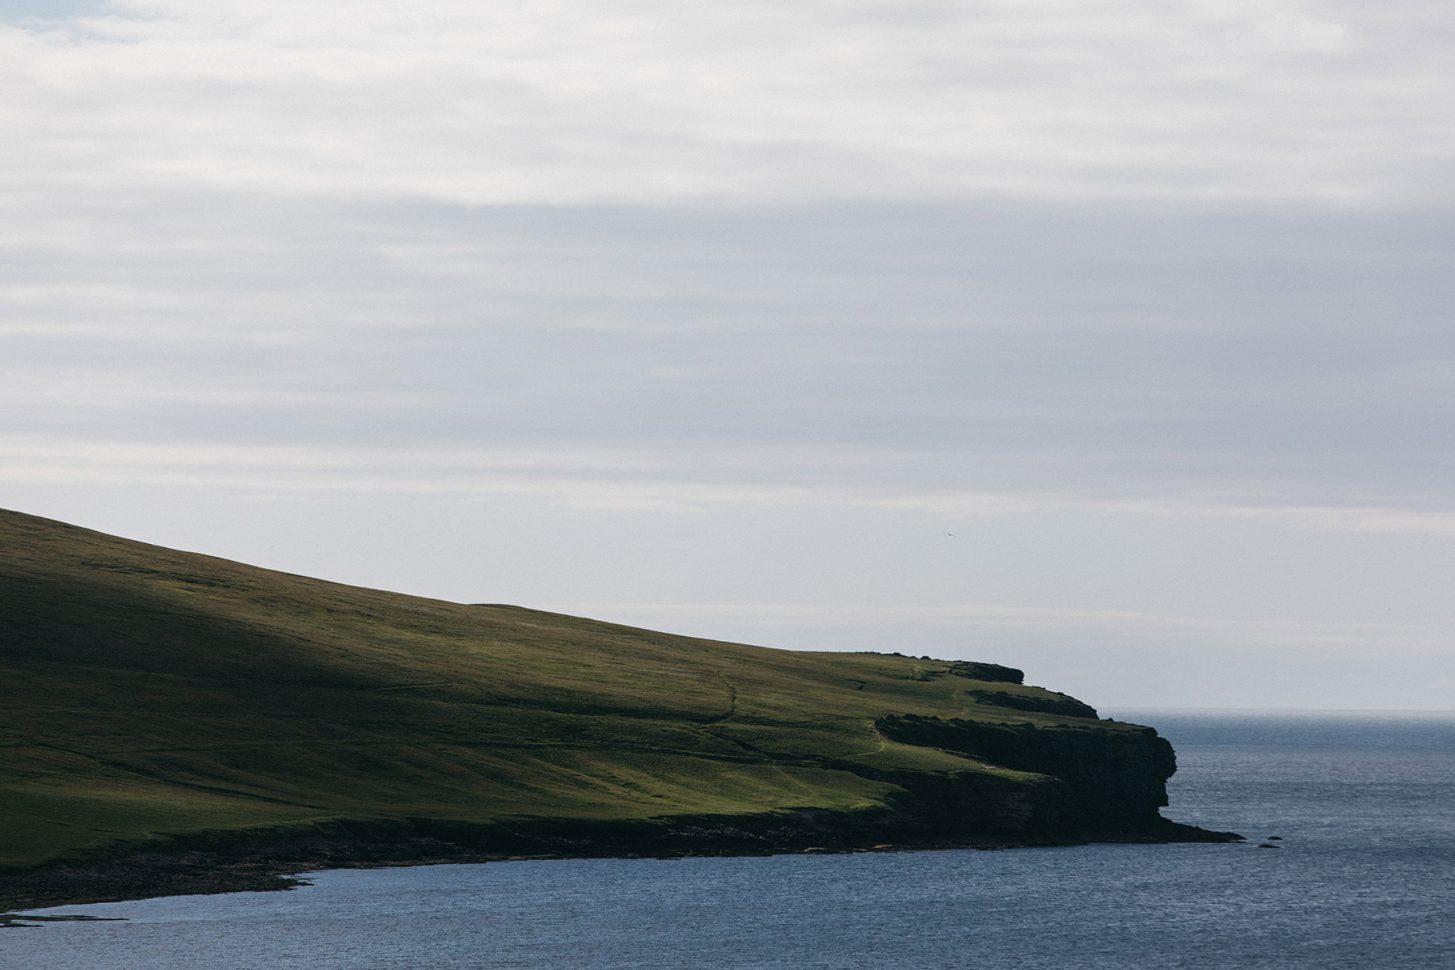 From the North Sea to Shetland